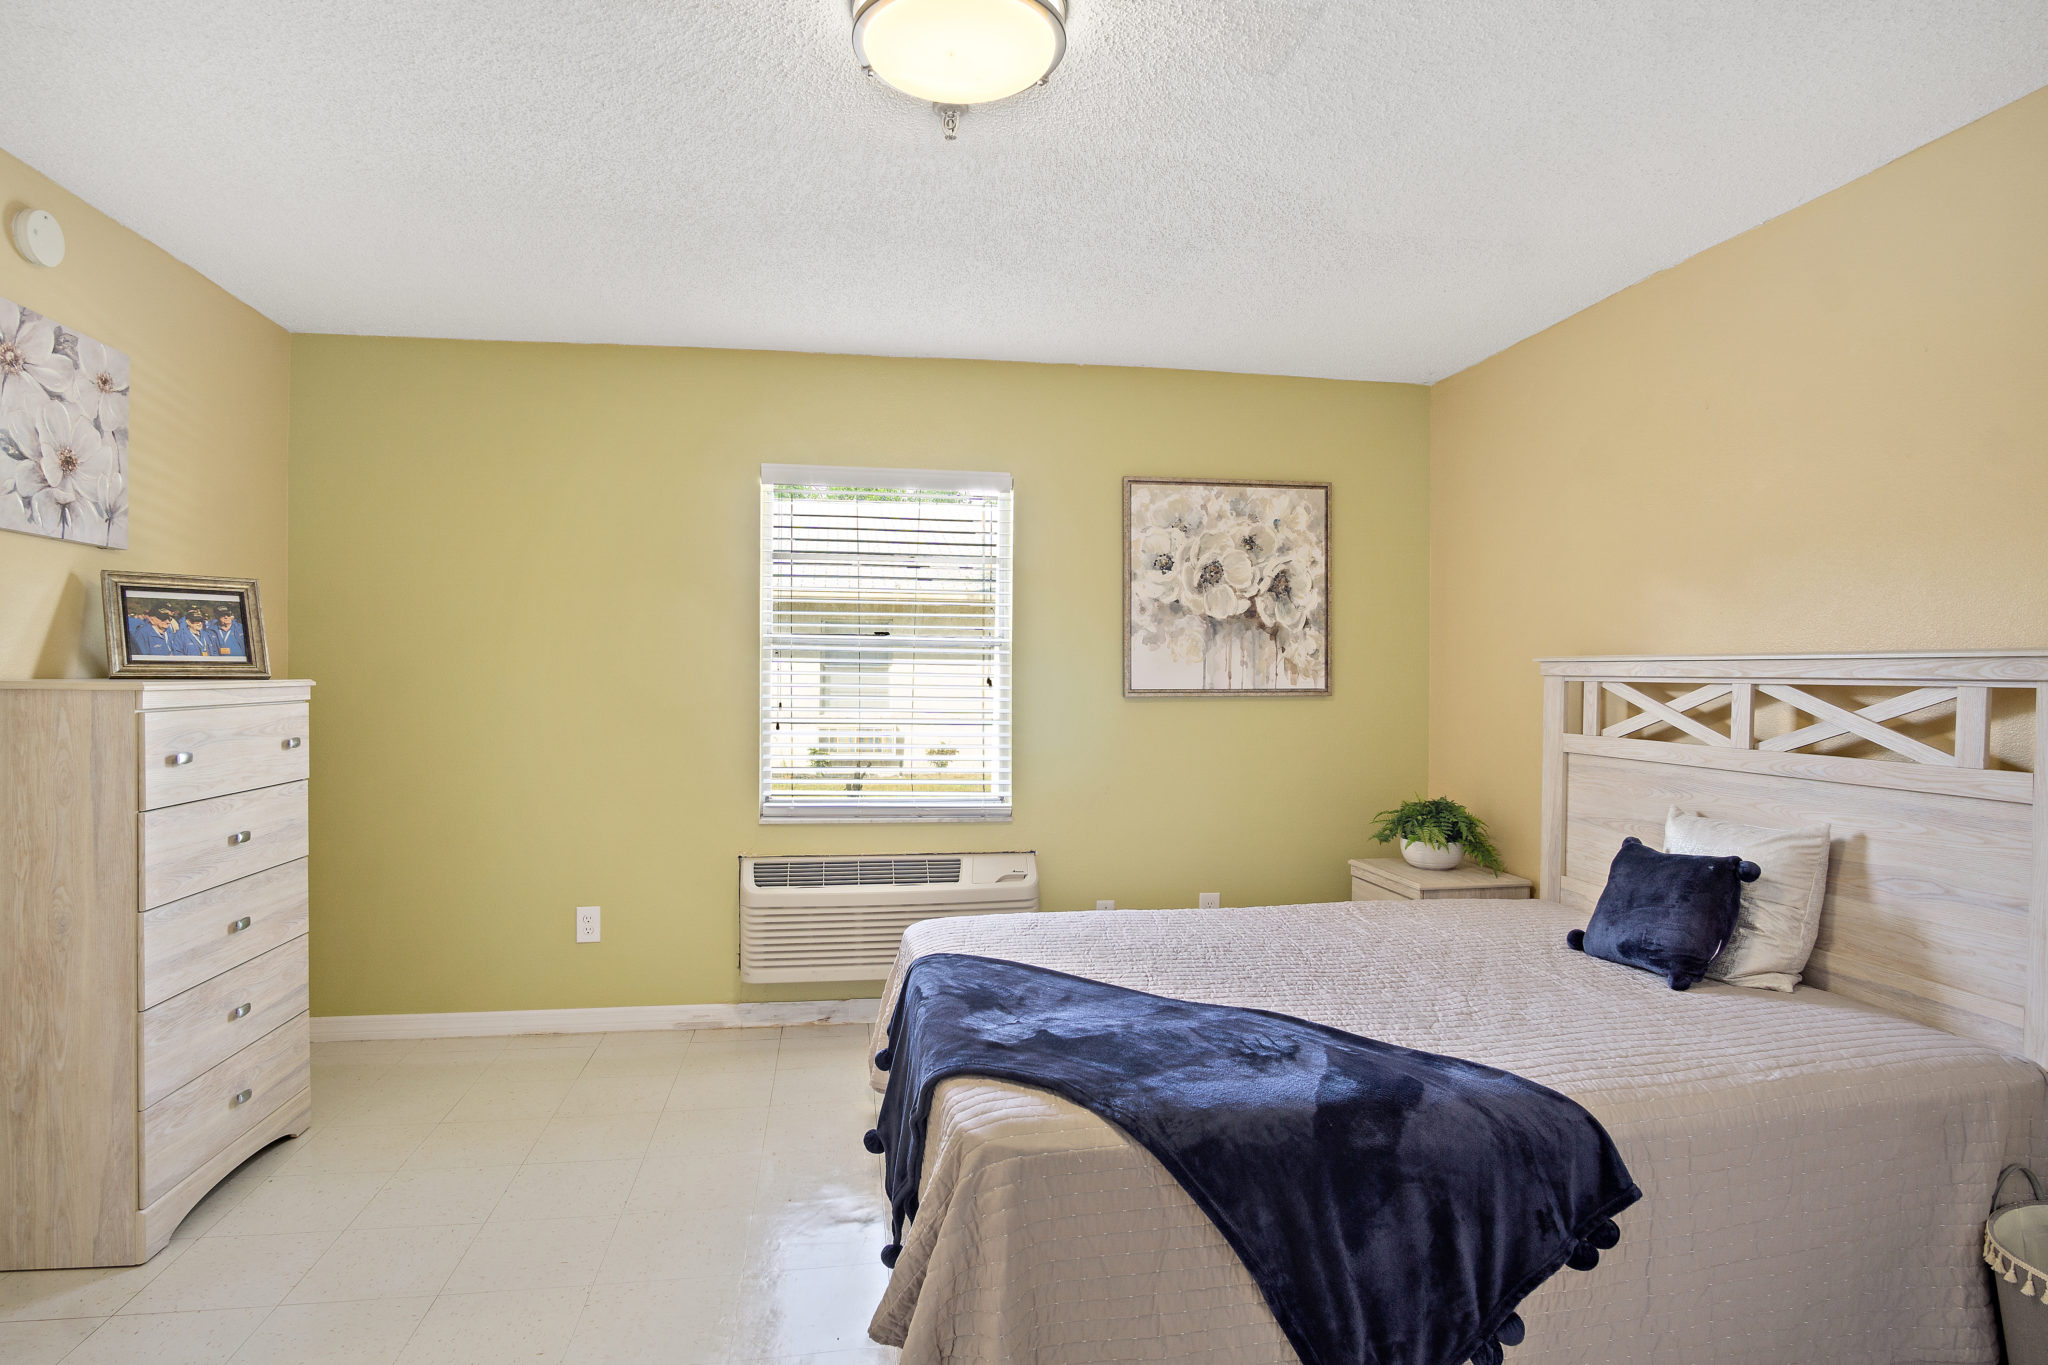 Bright comfortable room with a bed